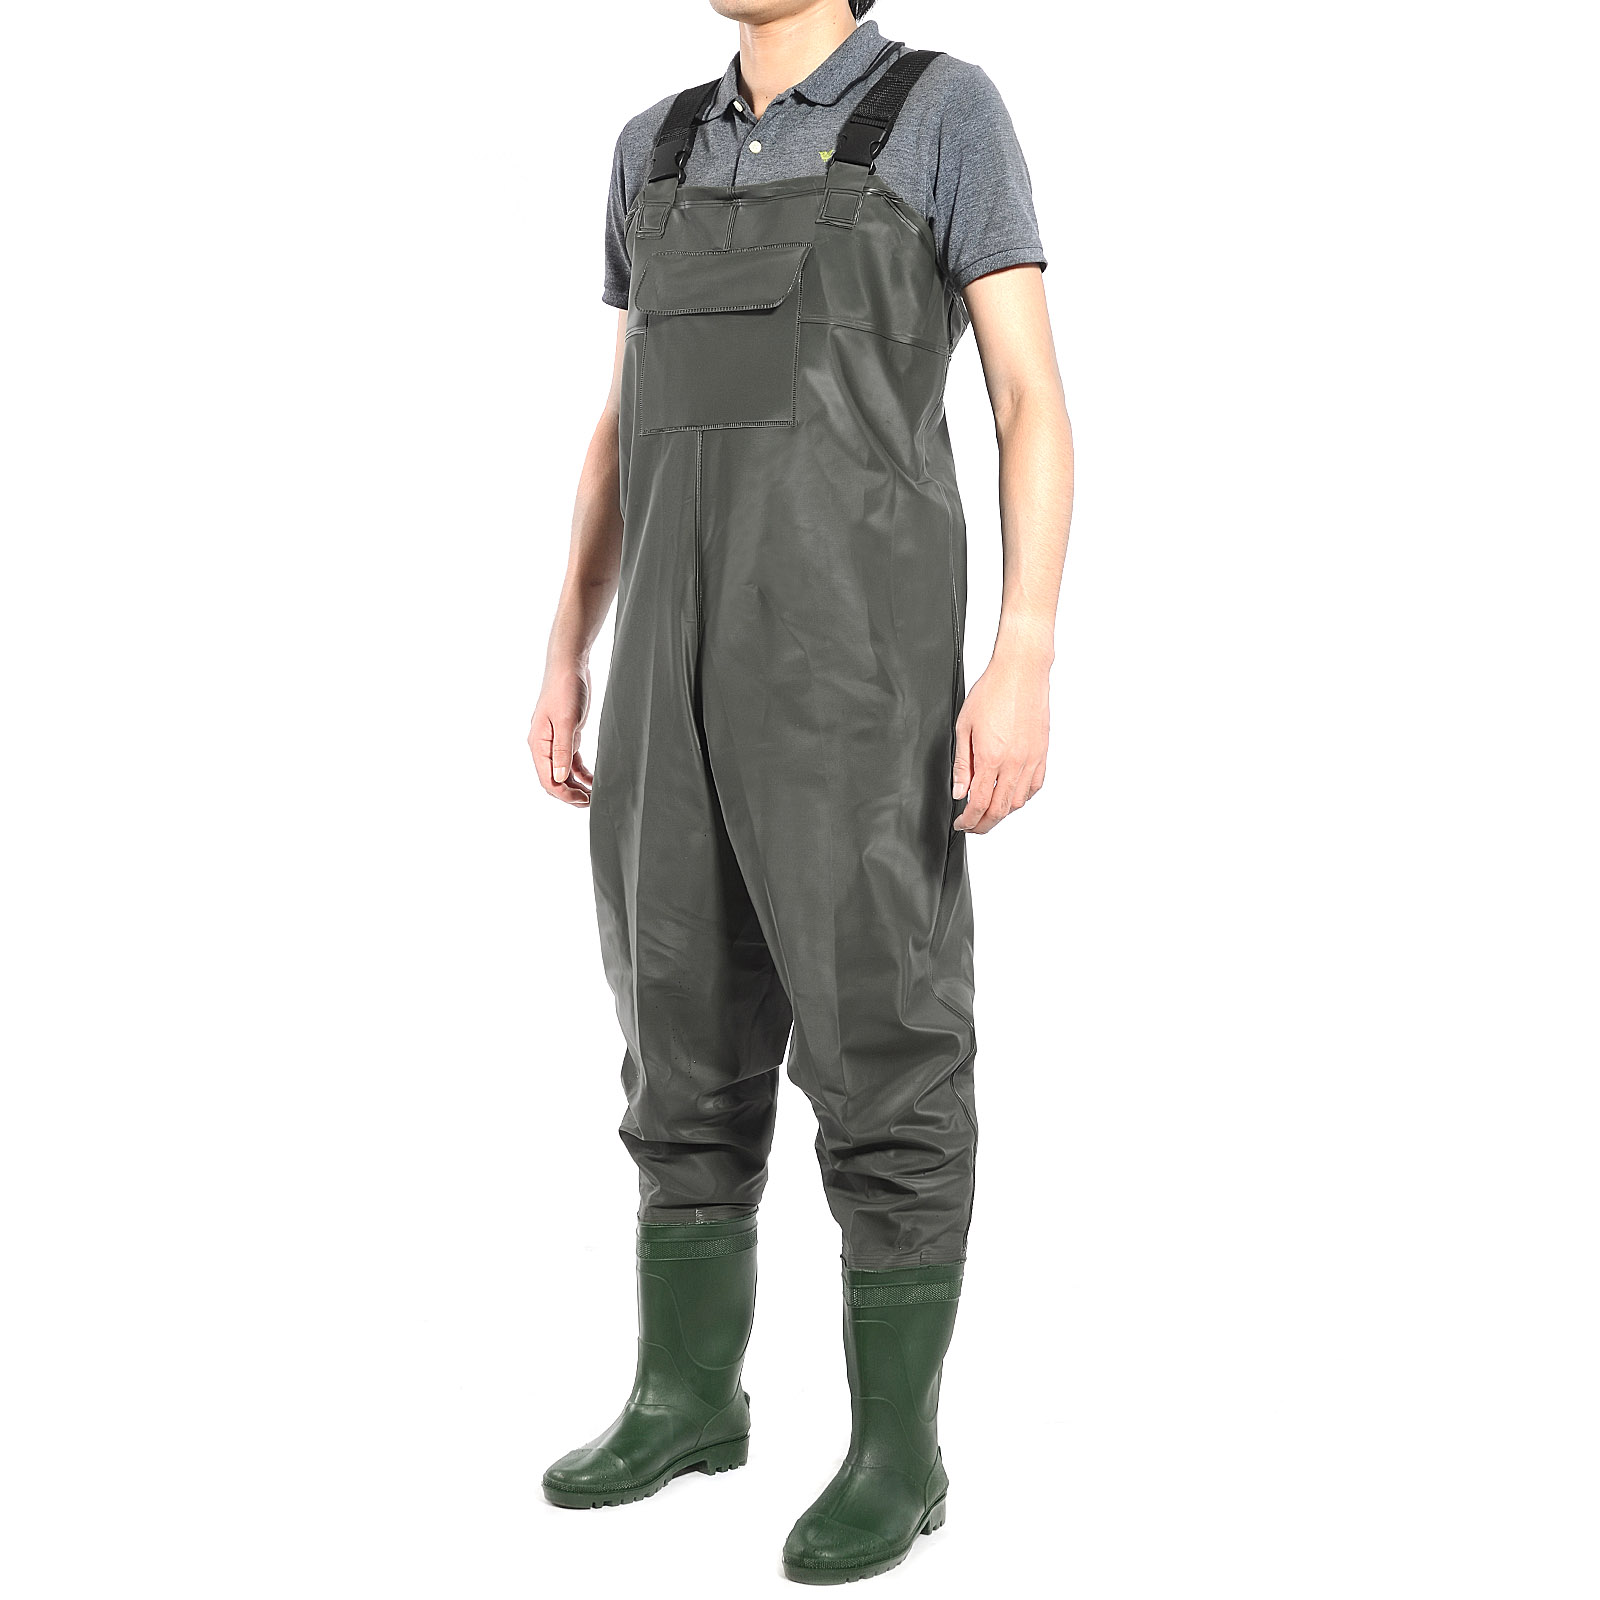 Pvc waterproof chest waders carp fly coarse fishing green for Fly fishing waders